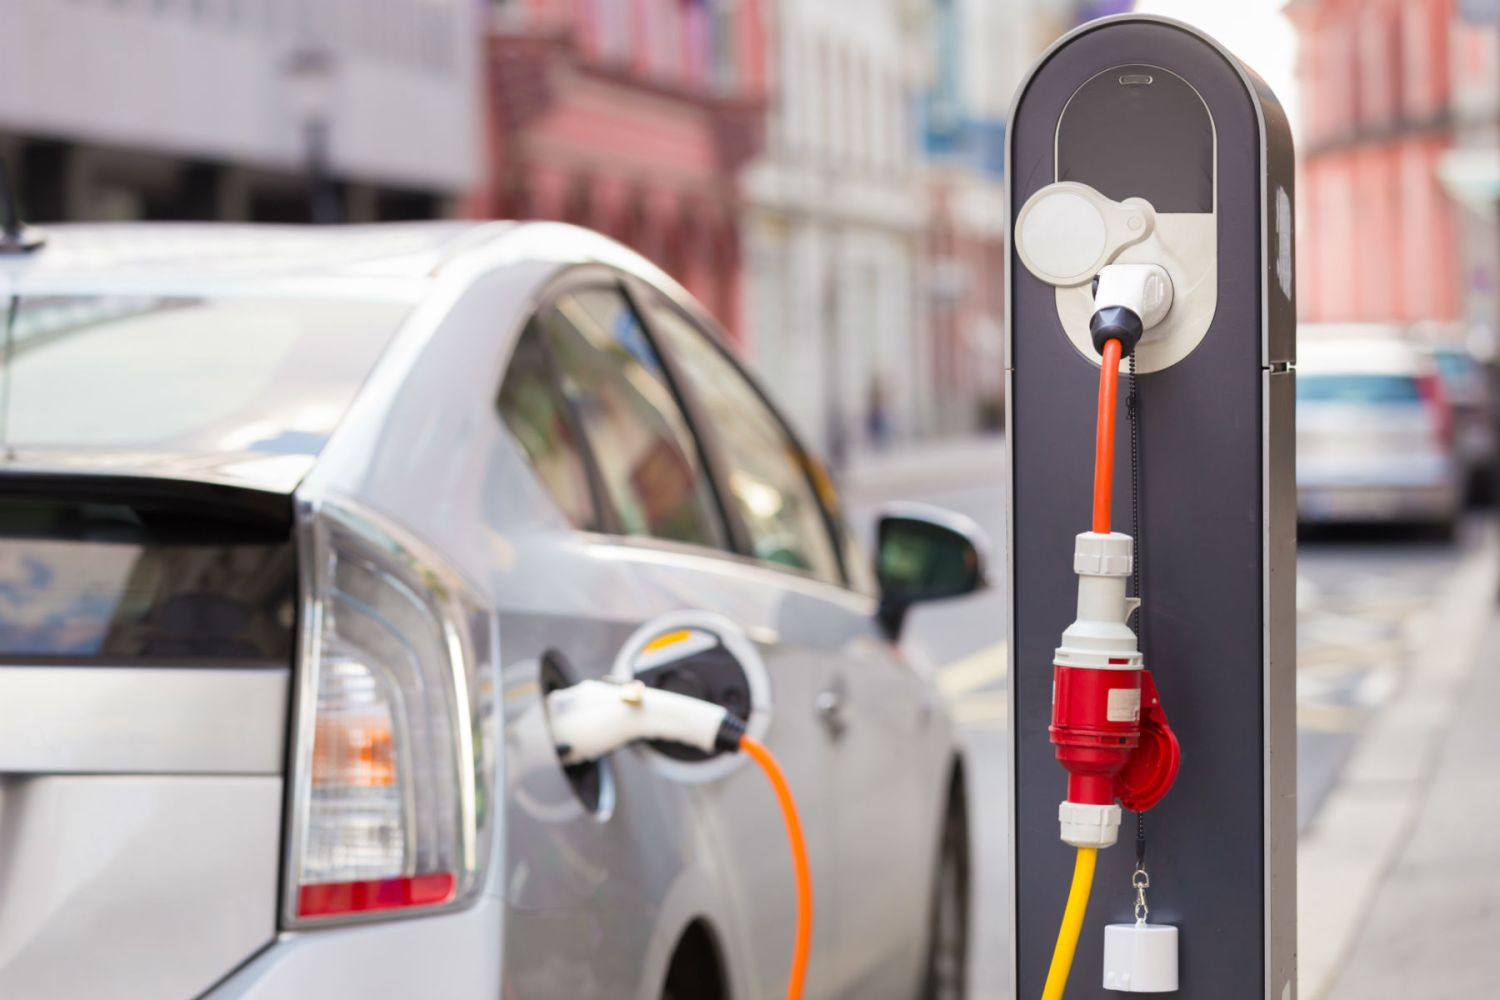 Plug-in hybrids emit more CO2 emissions than diesels, report finds